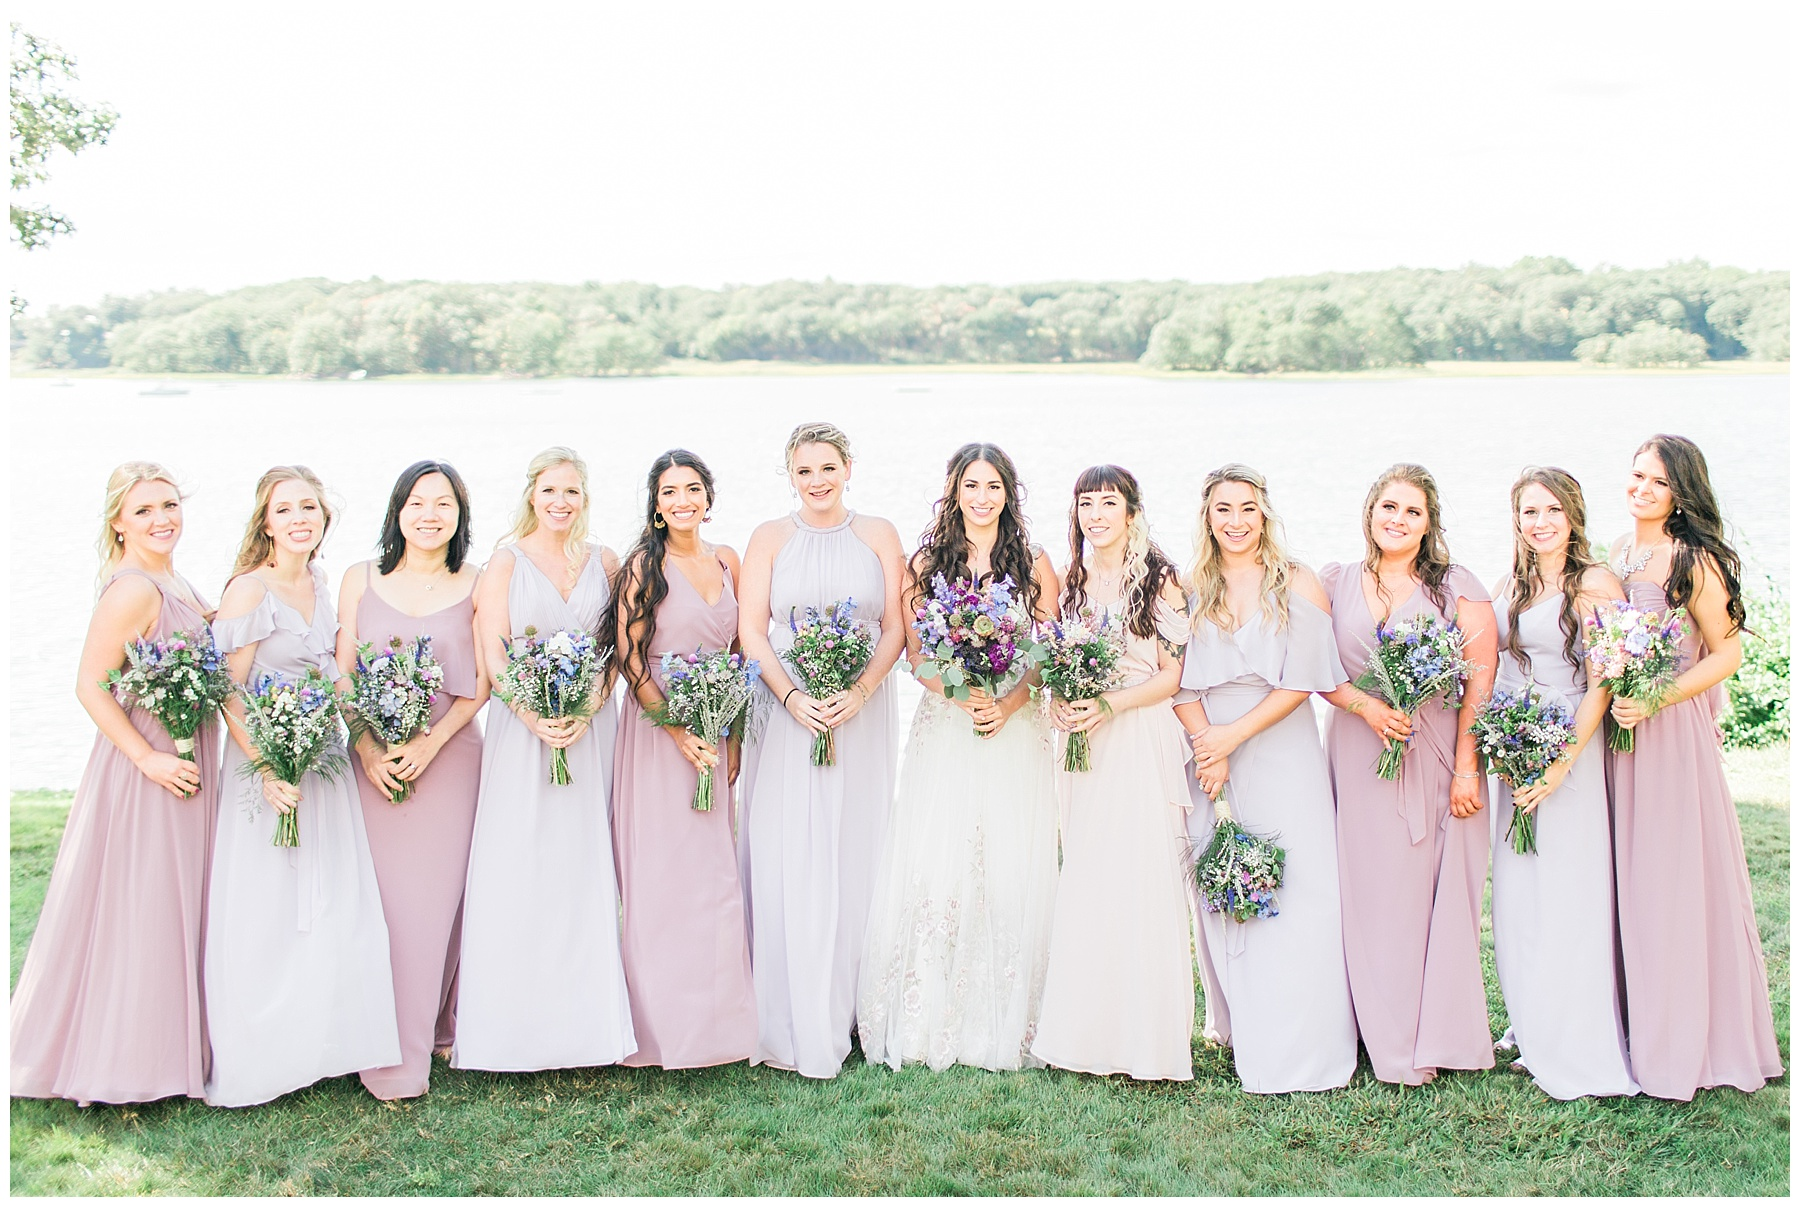 wanderlove-wedding-photographer-wainwright-rye-newyork-elegant-autumn-wedding-multicolor-bridal-party-